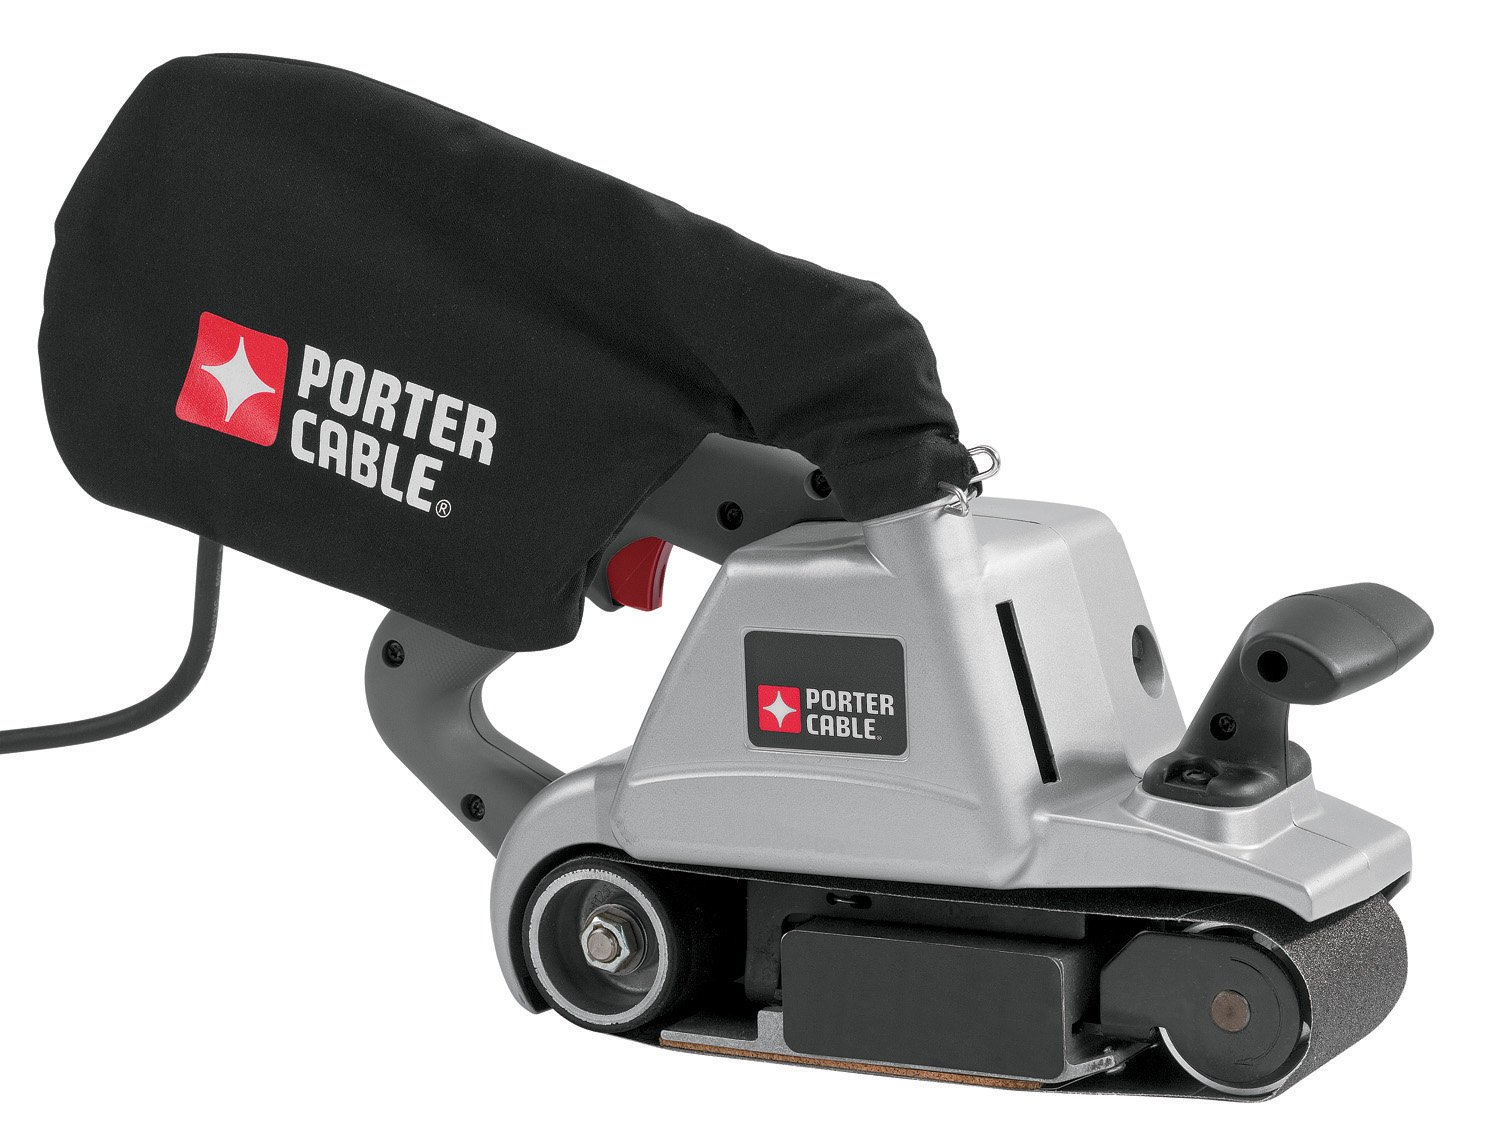 PORTER-CABLE 360VS 12 Amp 3-Inch by 24-Inch Variable Speed Belt Sander by PORTER-CABLE